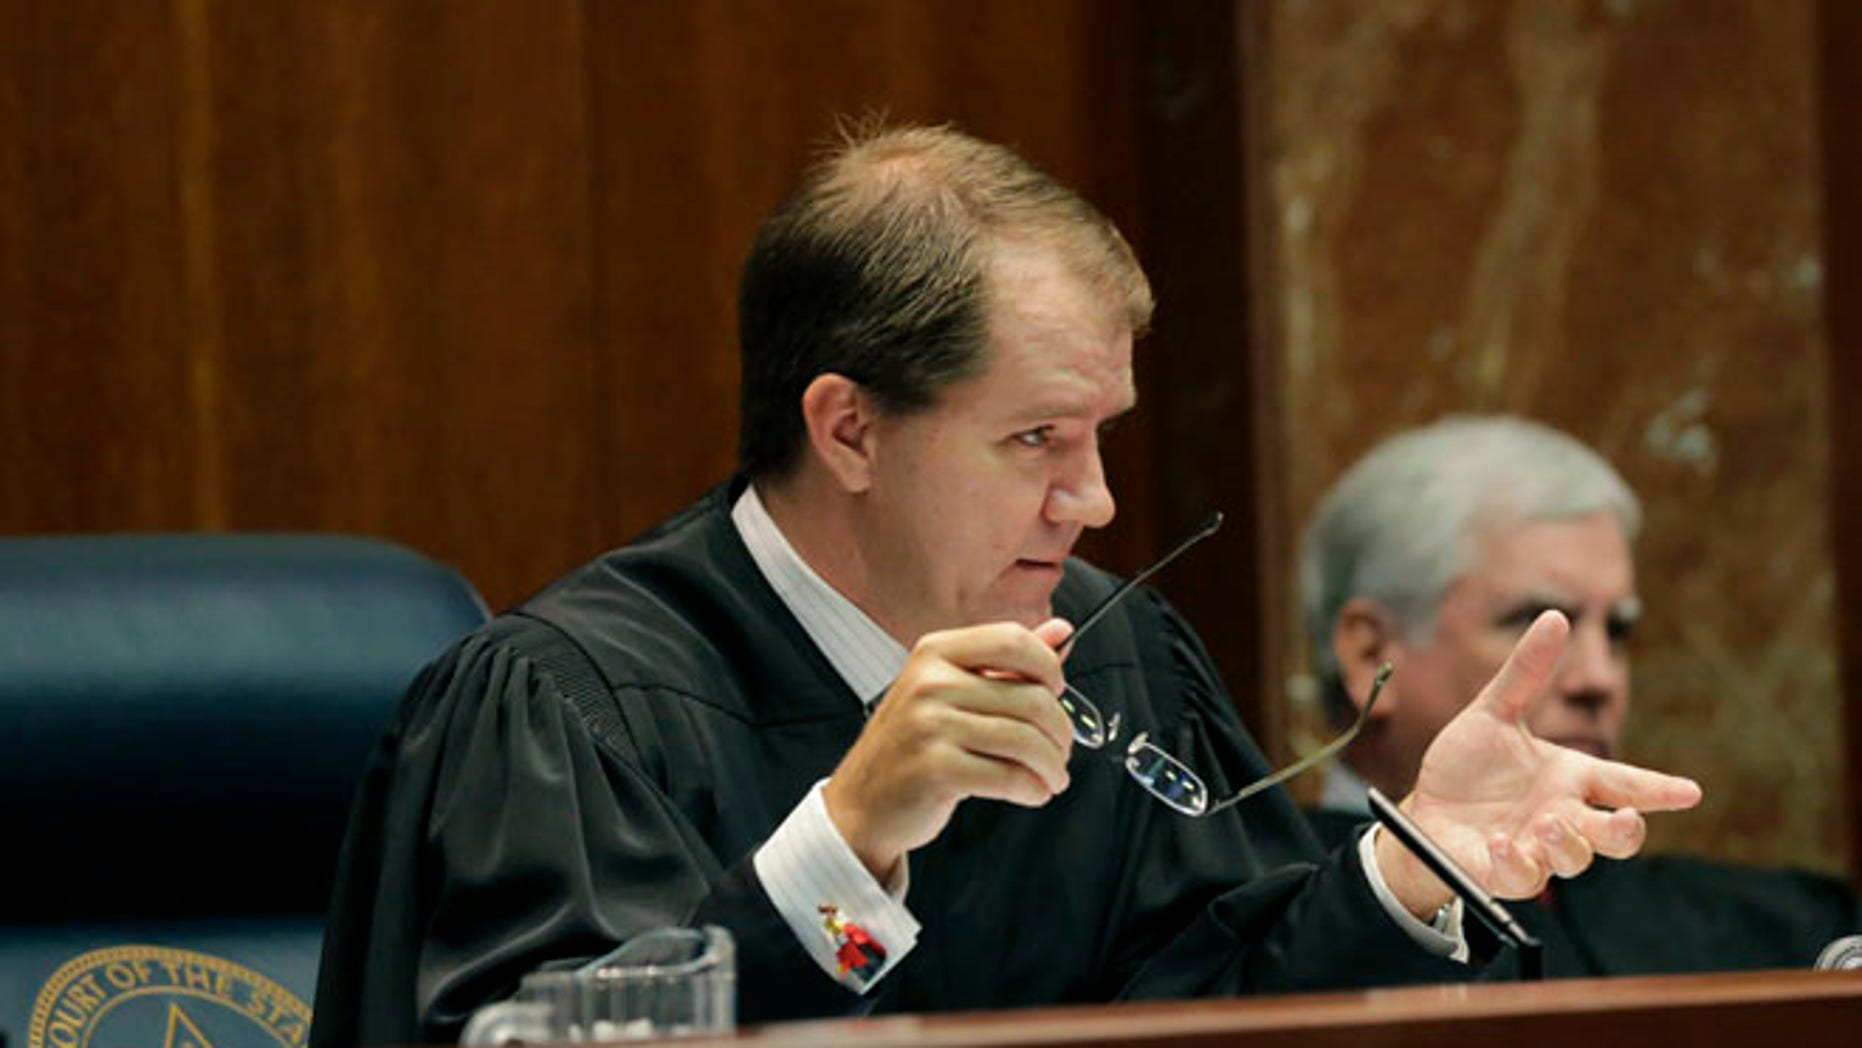 Texas Supreme Court Justice Don Willett, left, asks a question during oral arguments at the state Supreme Court in Austin, Texas.